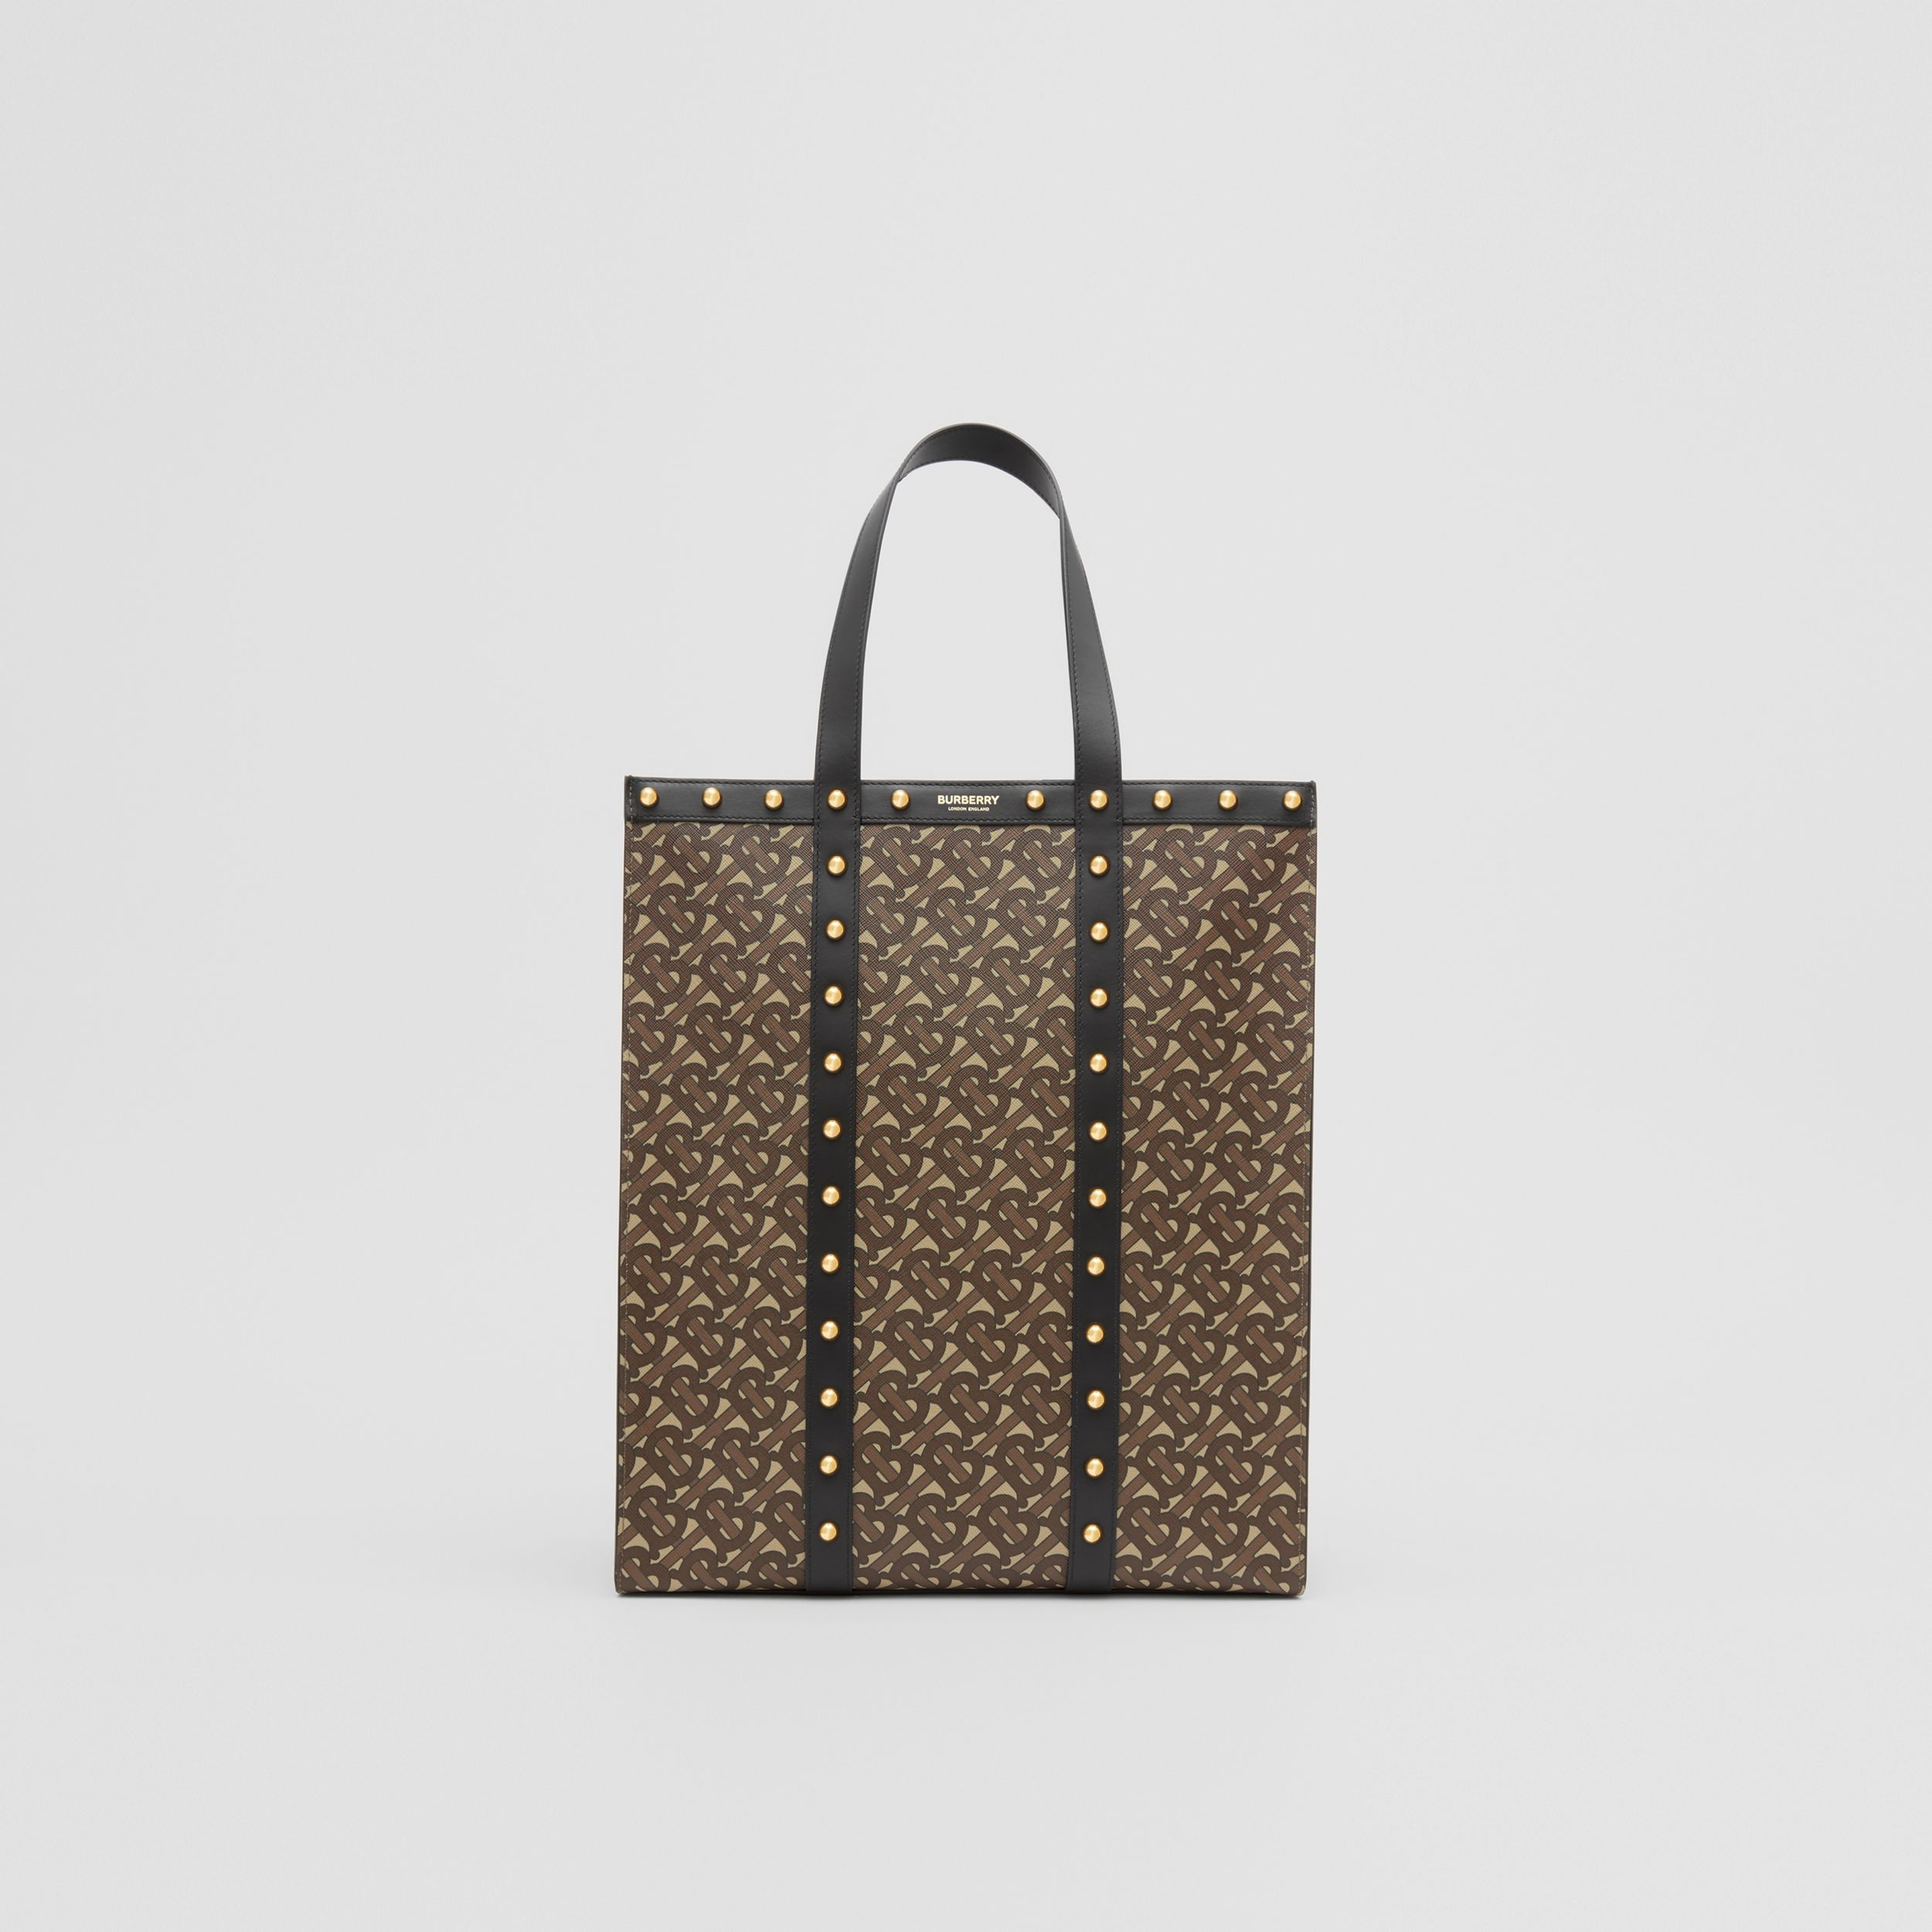 Monogram Print E-canvas Portrait Tote Bag in Black | Burberry - 1